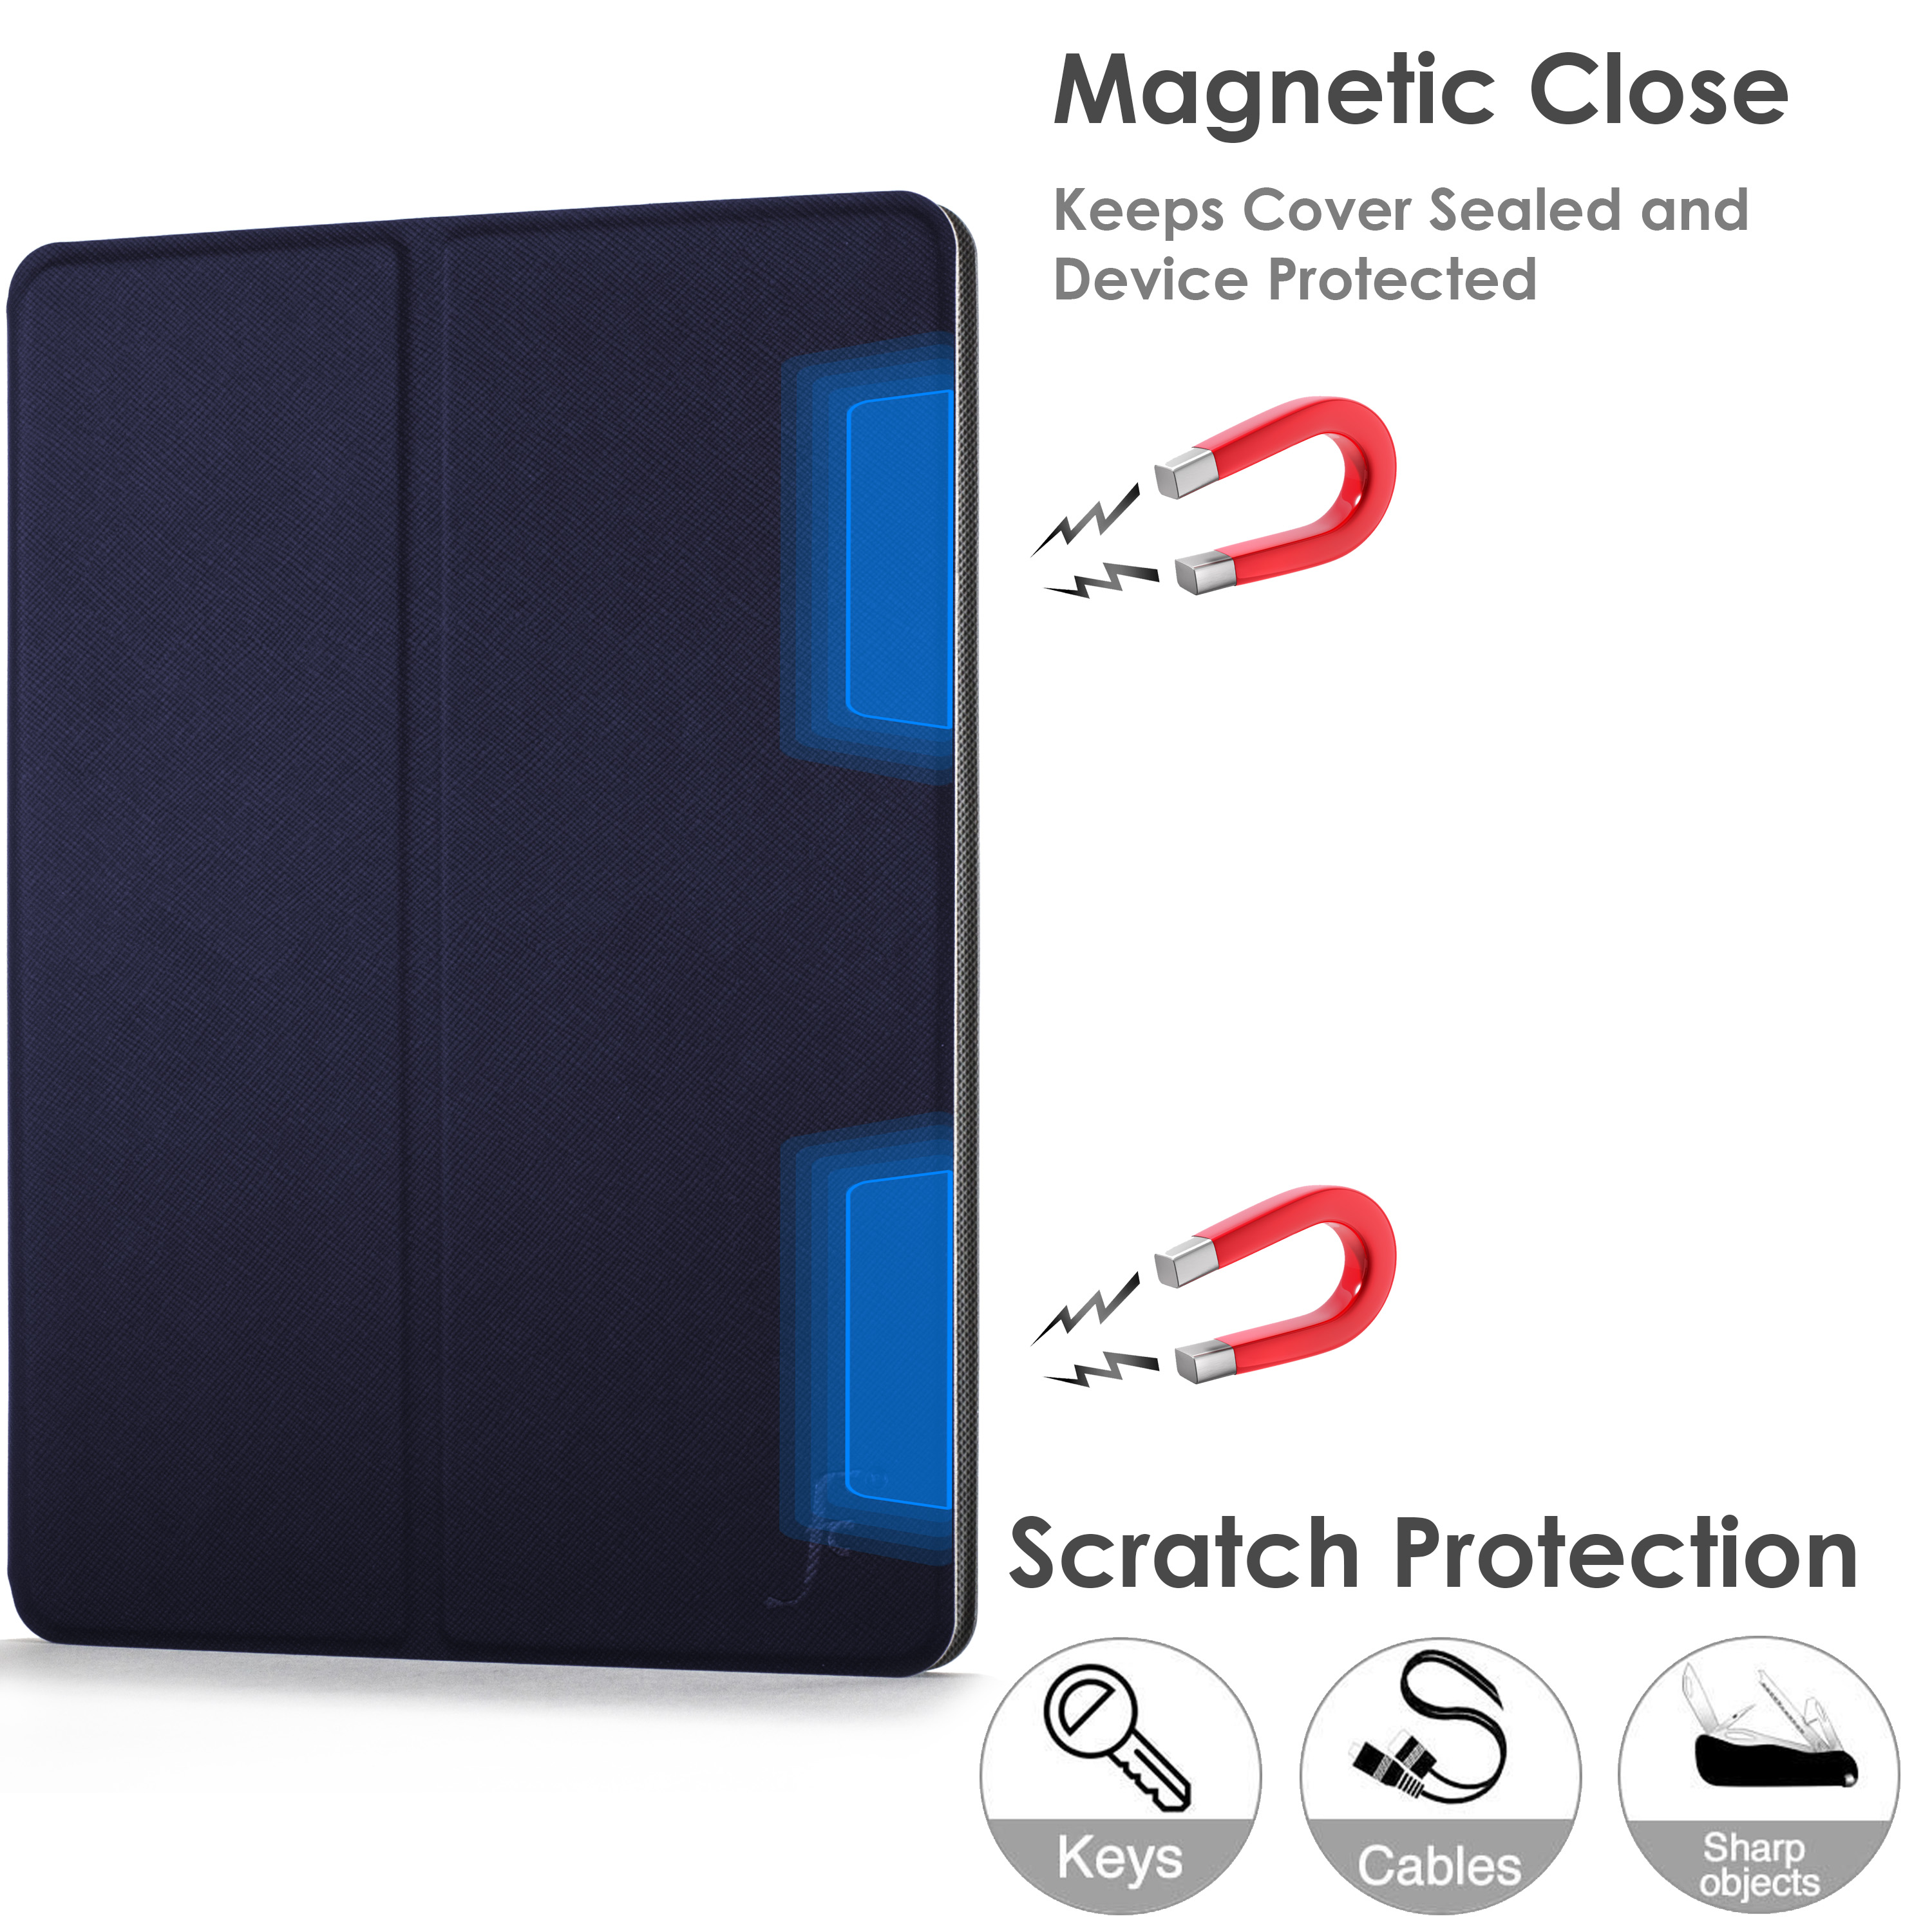 miniature 39 - Samsung Galaxy Tab A 10.1 2019 Étui Magnétique Protection & Support + Stylet